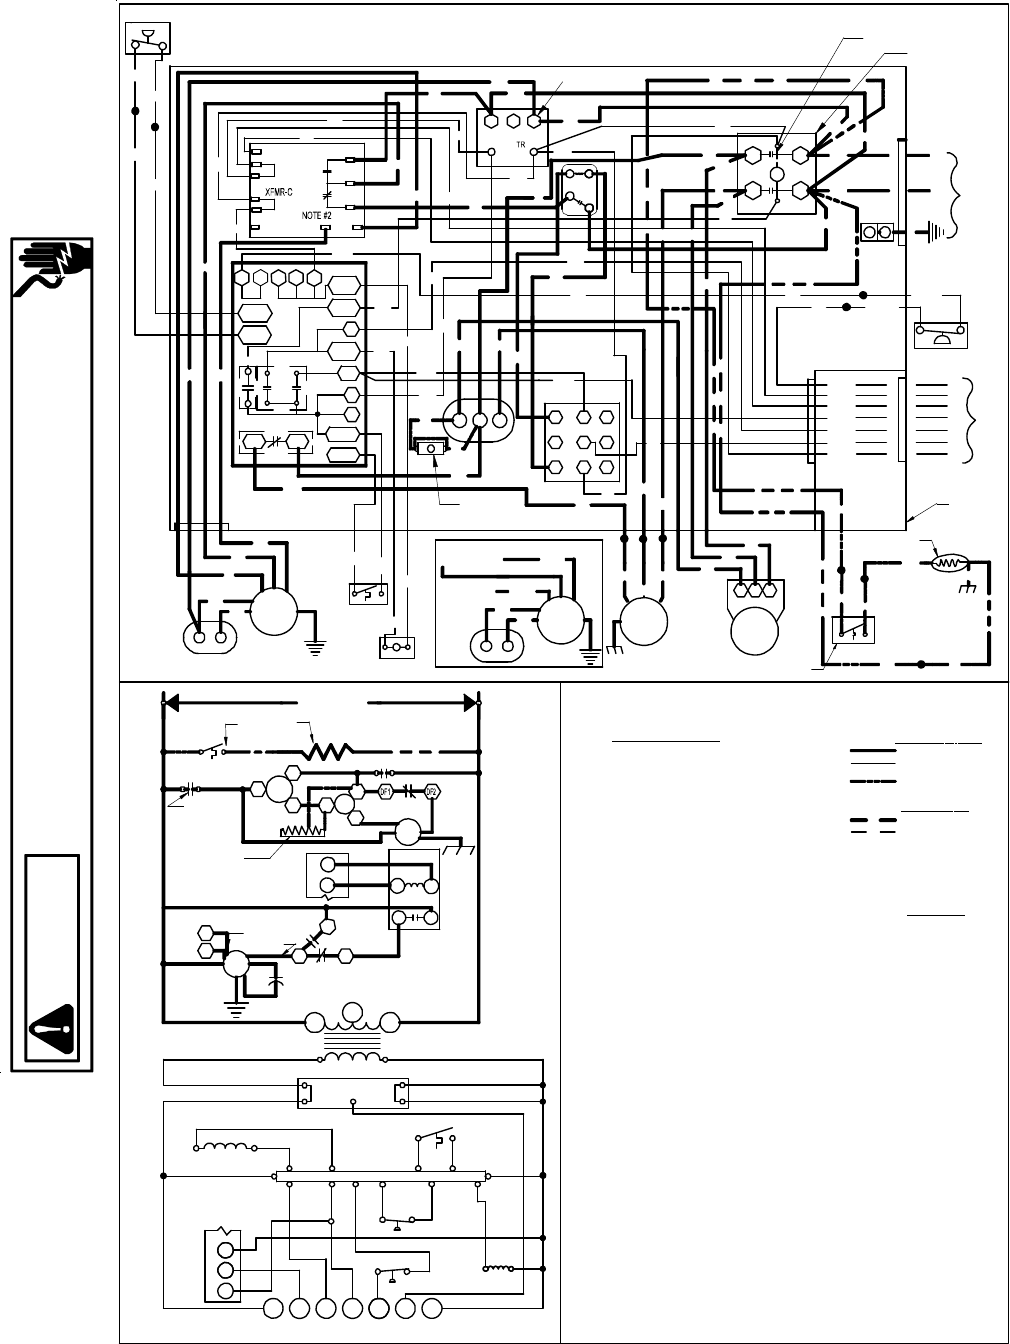 Rt6332013r1 on thermostat 2 heat 1 air wiring diagram